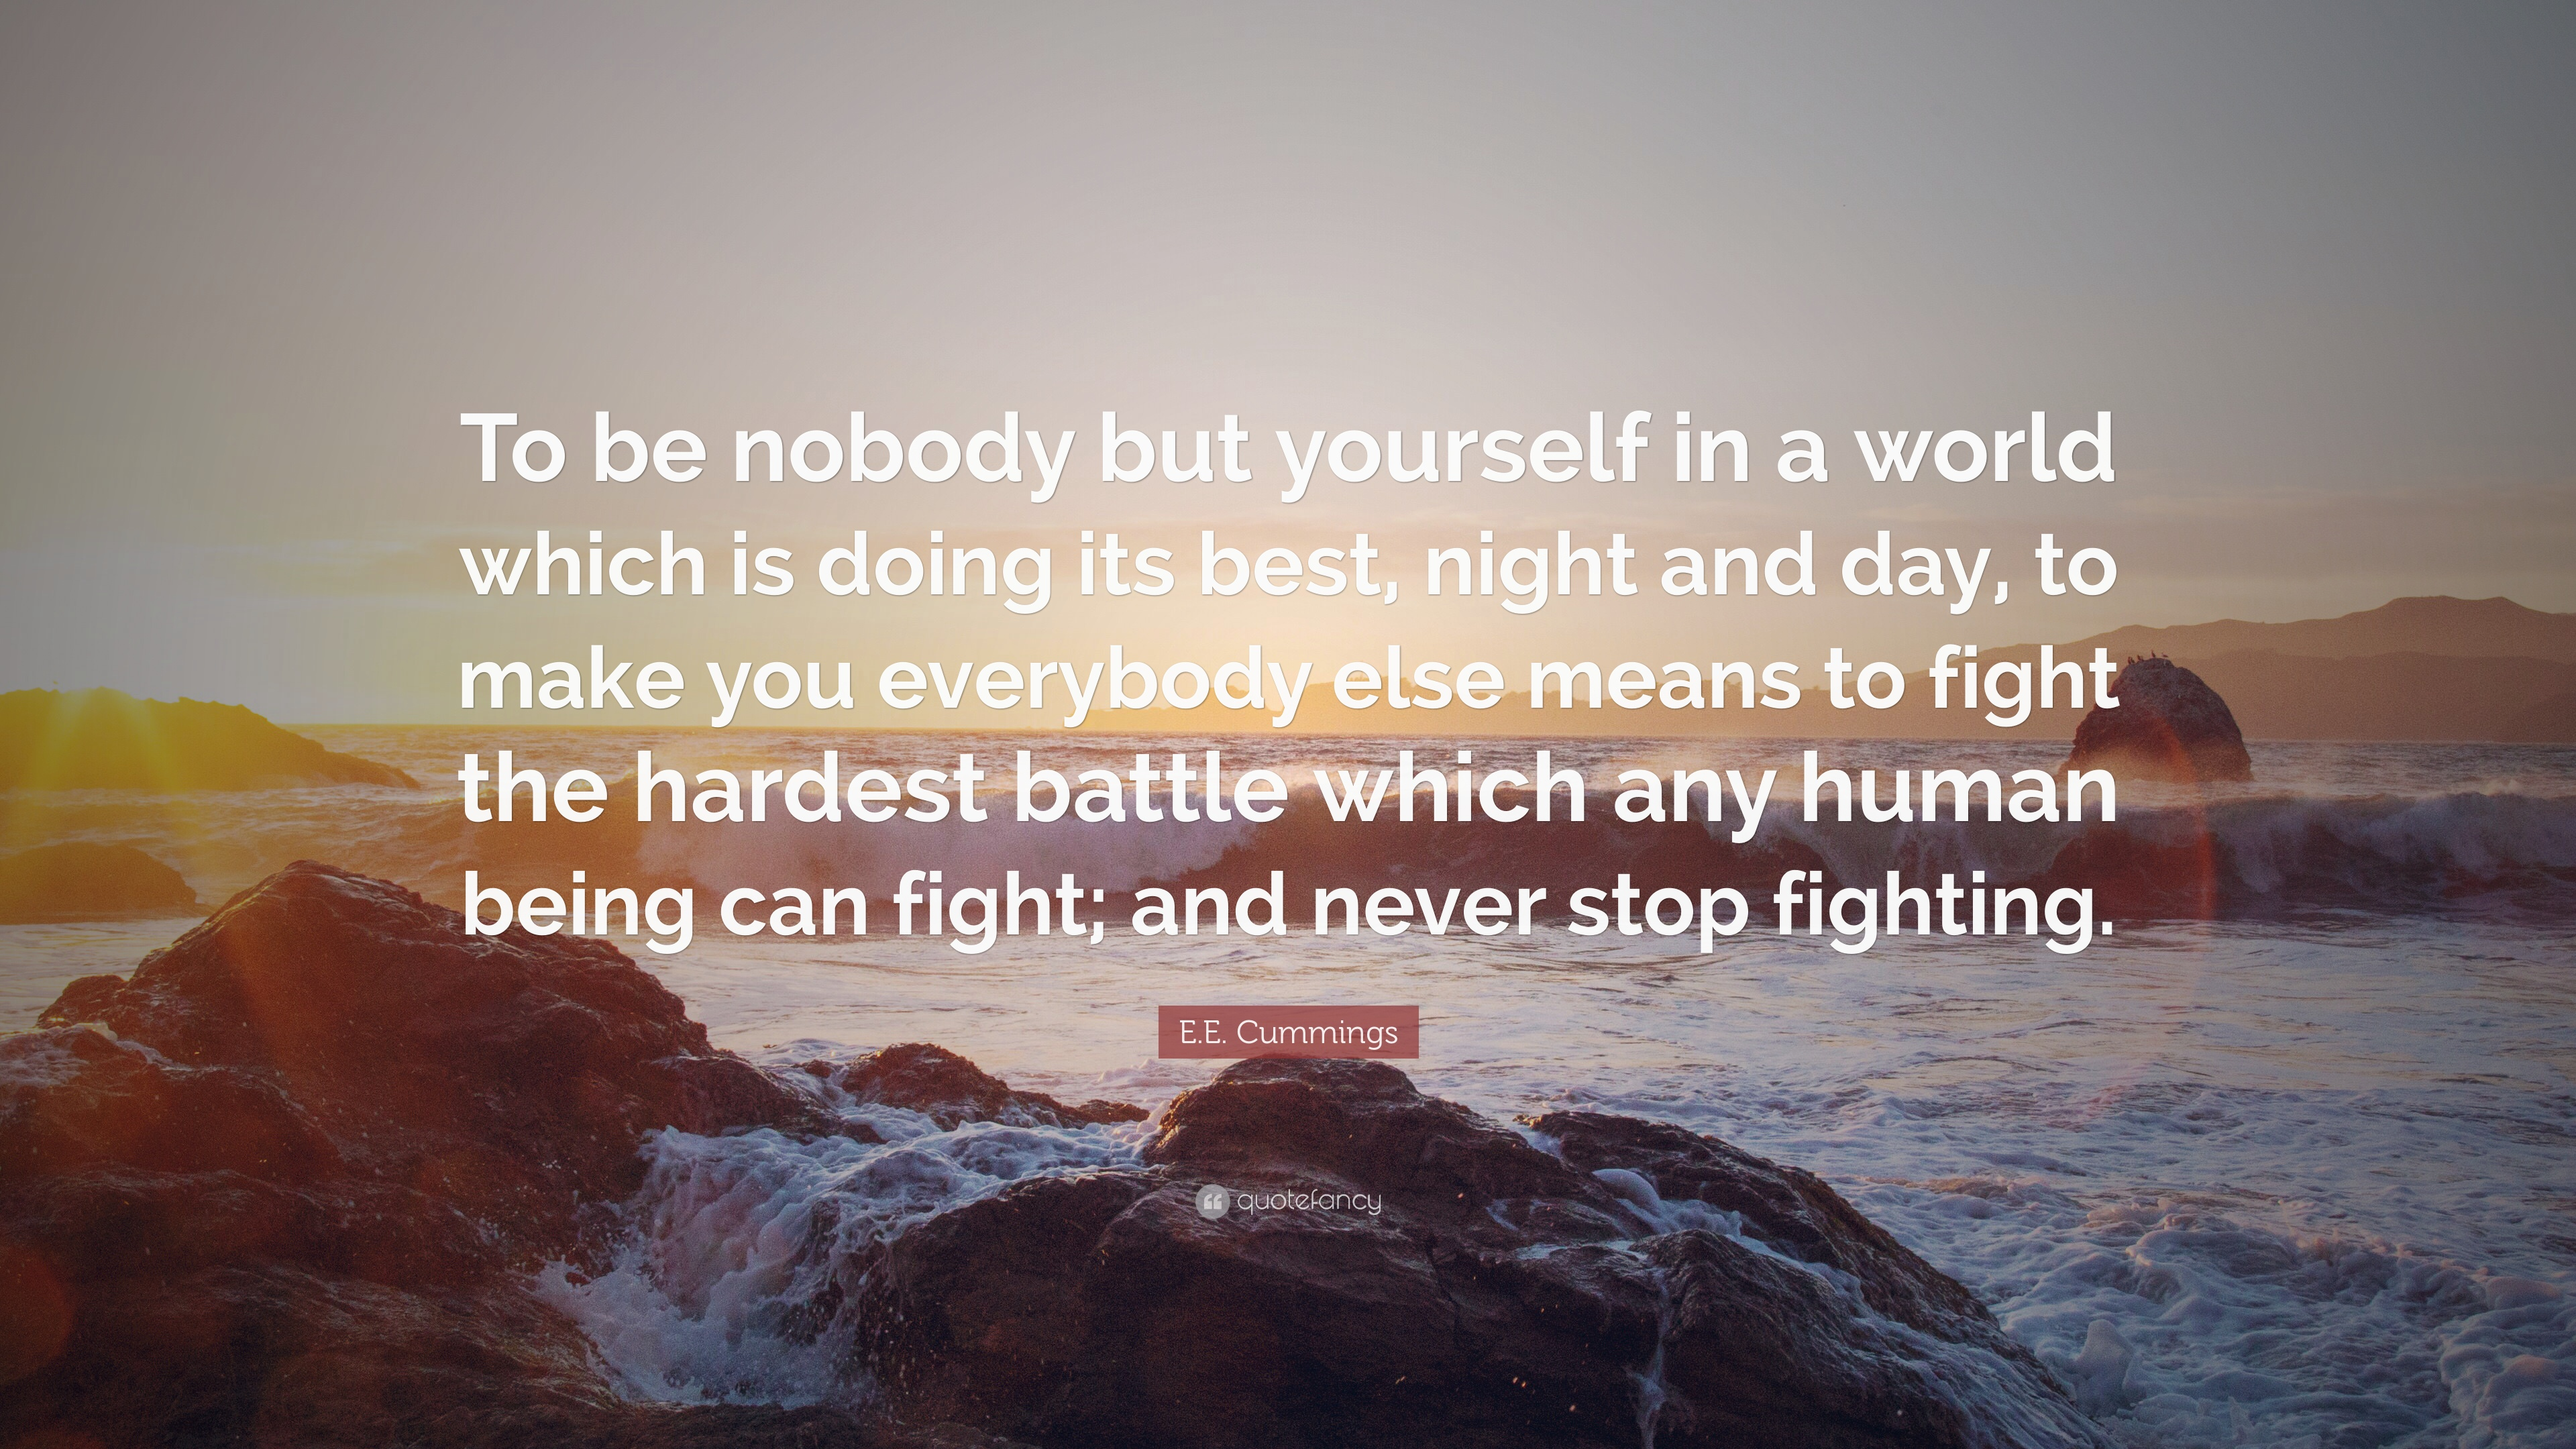 to be nobody but yourself To be nobody but yourself in a quotes - 1 to be nobody but yourself, in a world which is doing its best, night and day, to make you like everybody else, means to fight the hardest battle any human being can fight and never stop fighting read more quotes and sayings about to be nobody but.